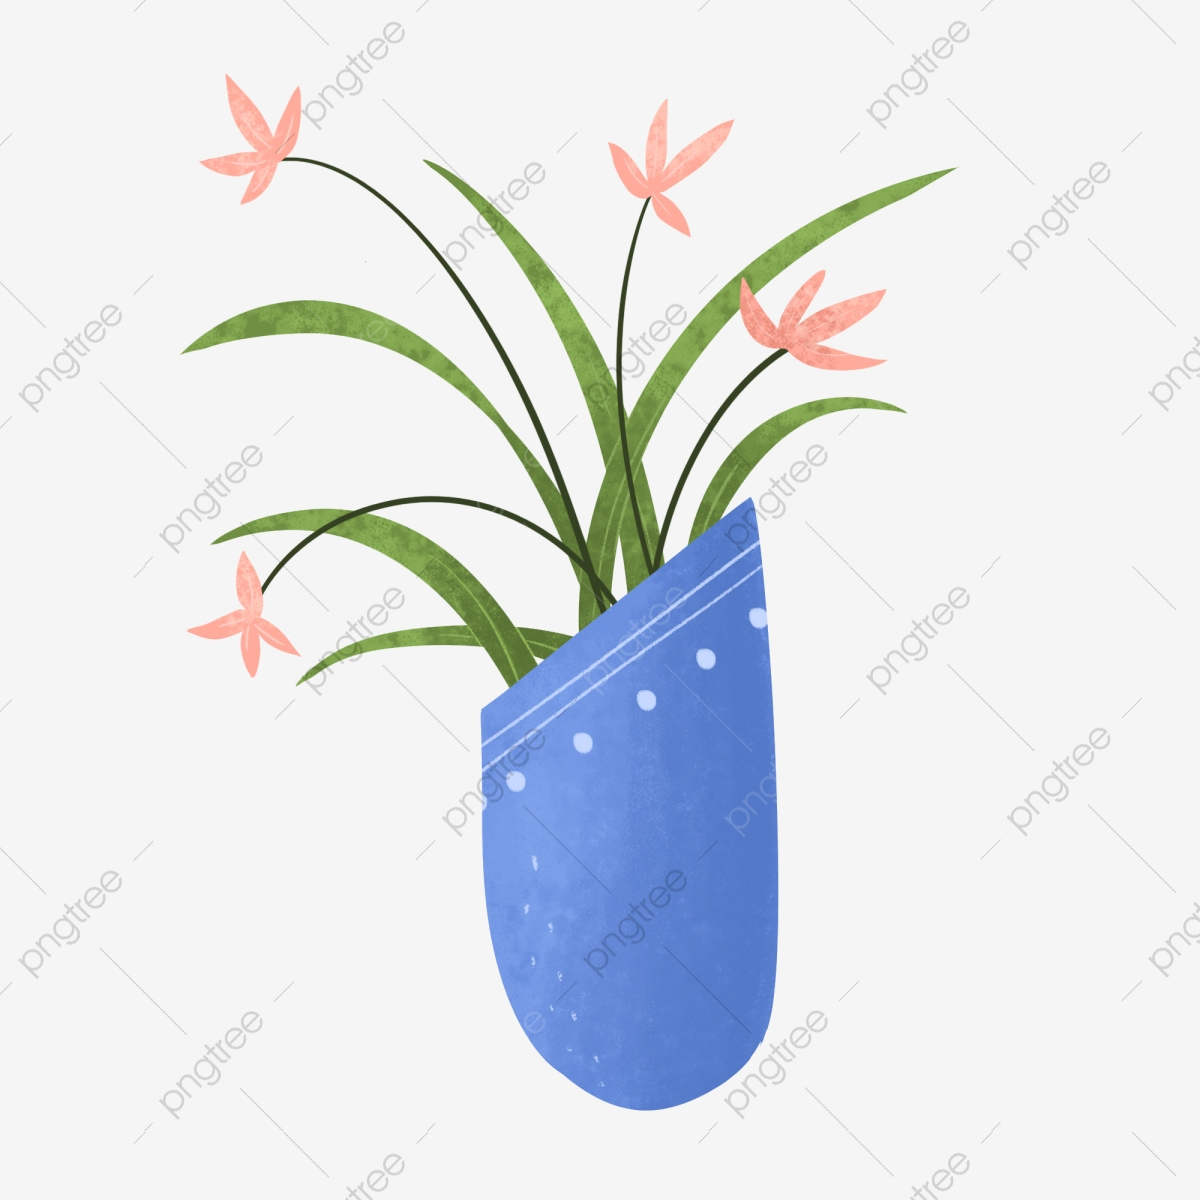 Blue Beveled Simple Orchid Bonsai Orchid Flower Blue Png Transparent Clipart Image And Psd File For Free Download